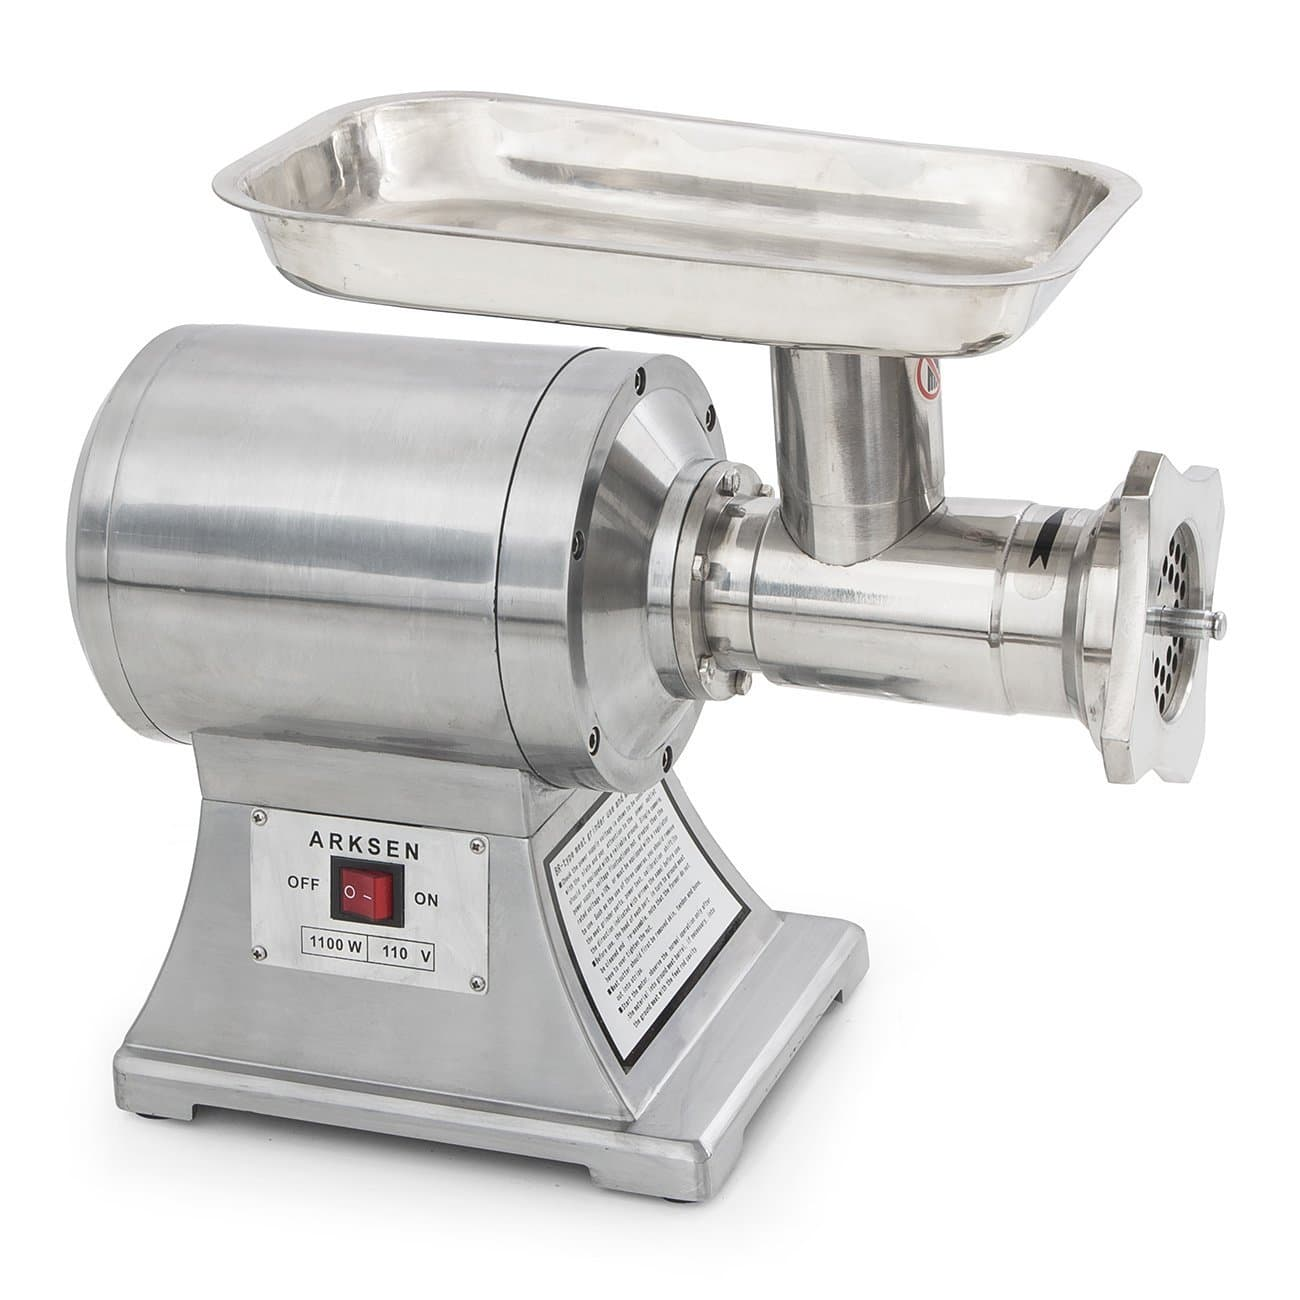 Arksen 1100w Commercial Electric Meat Grinder Review